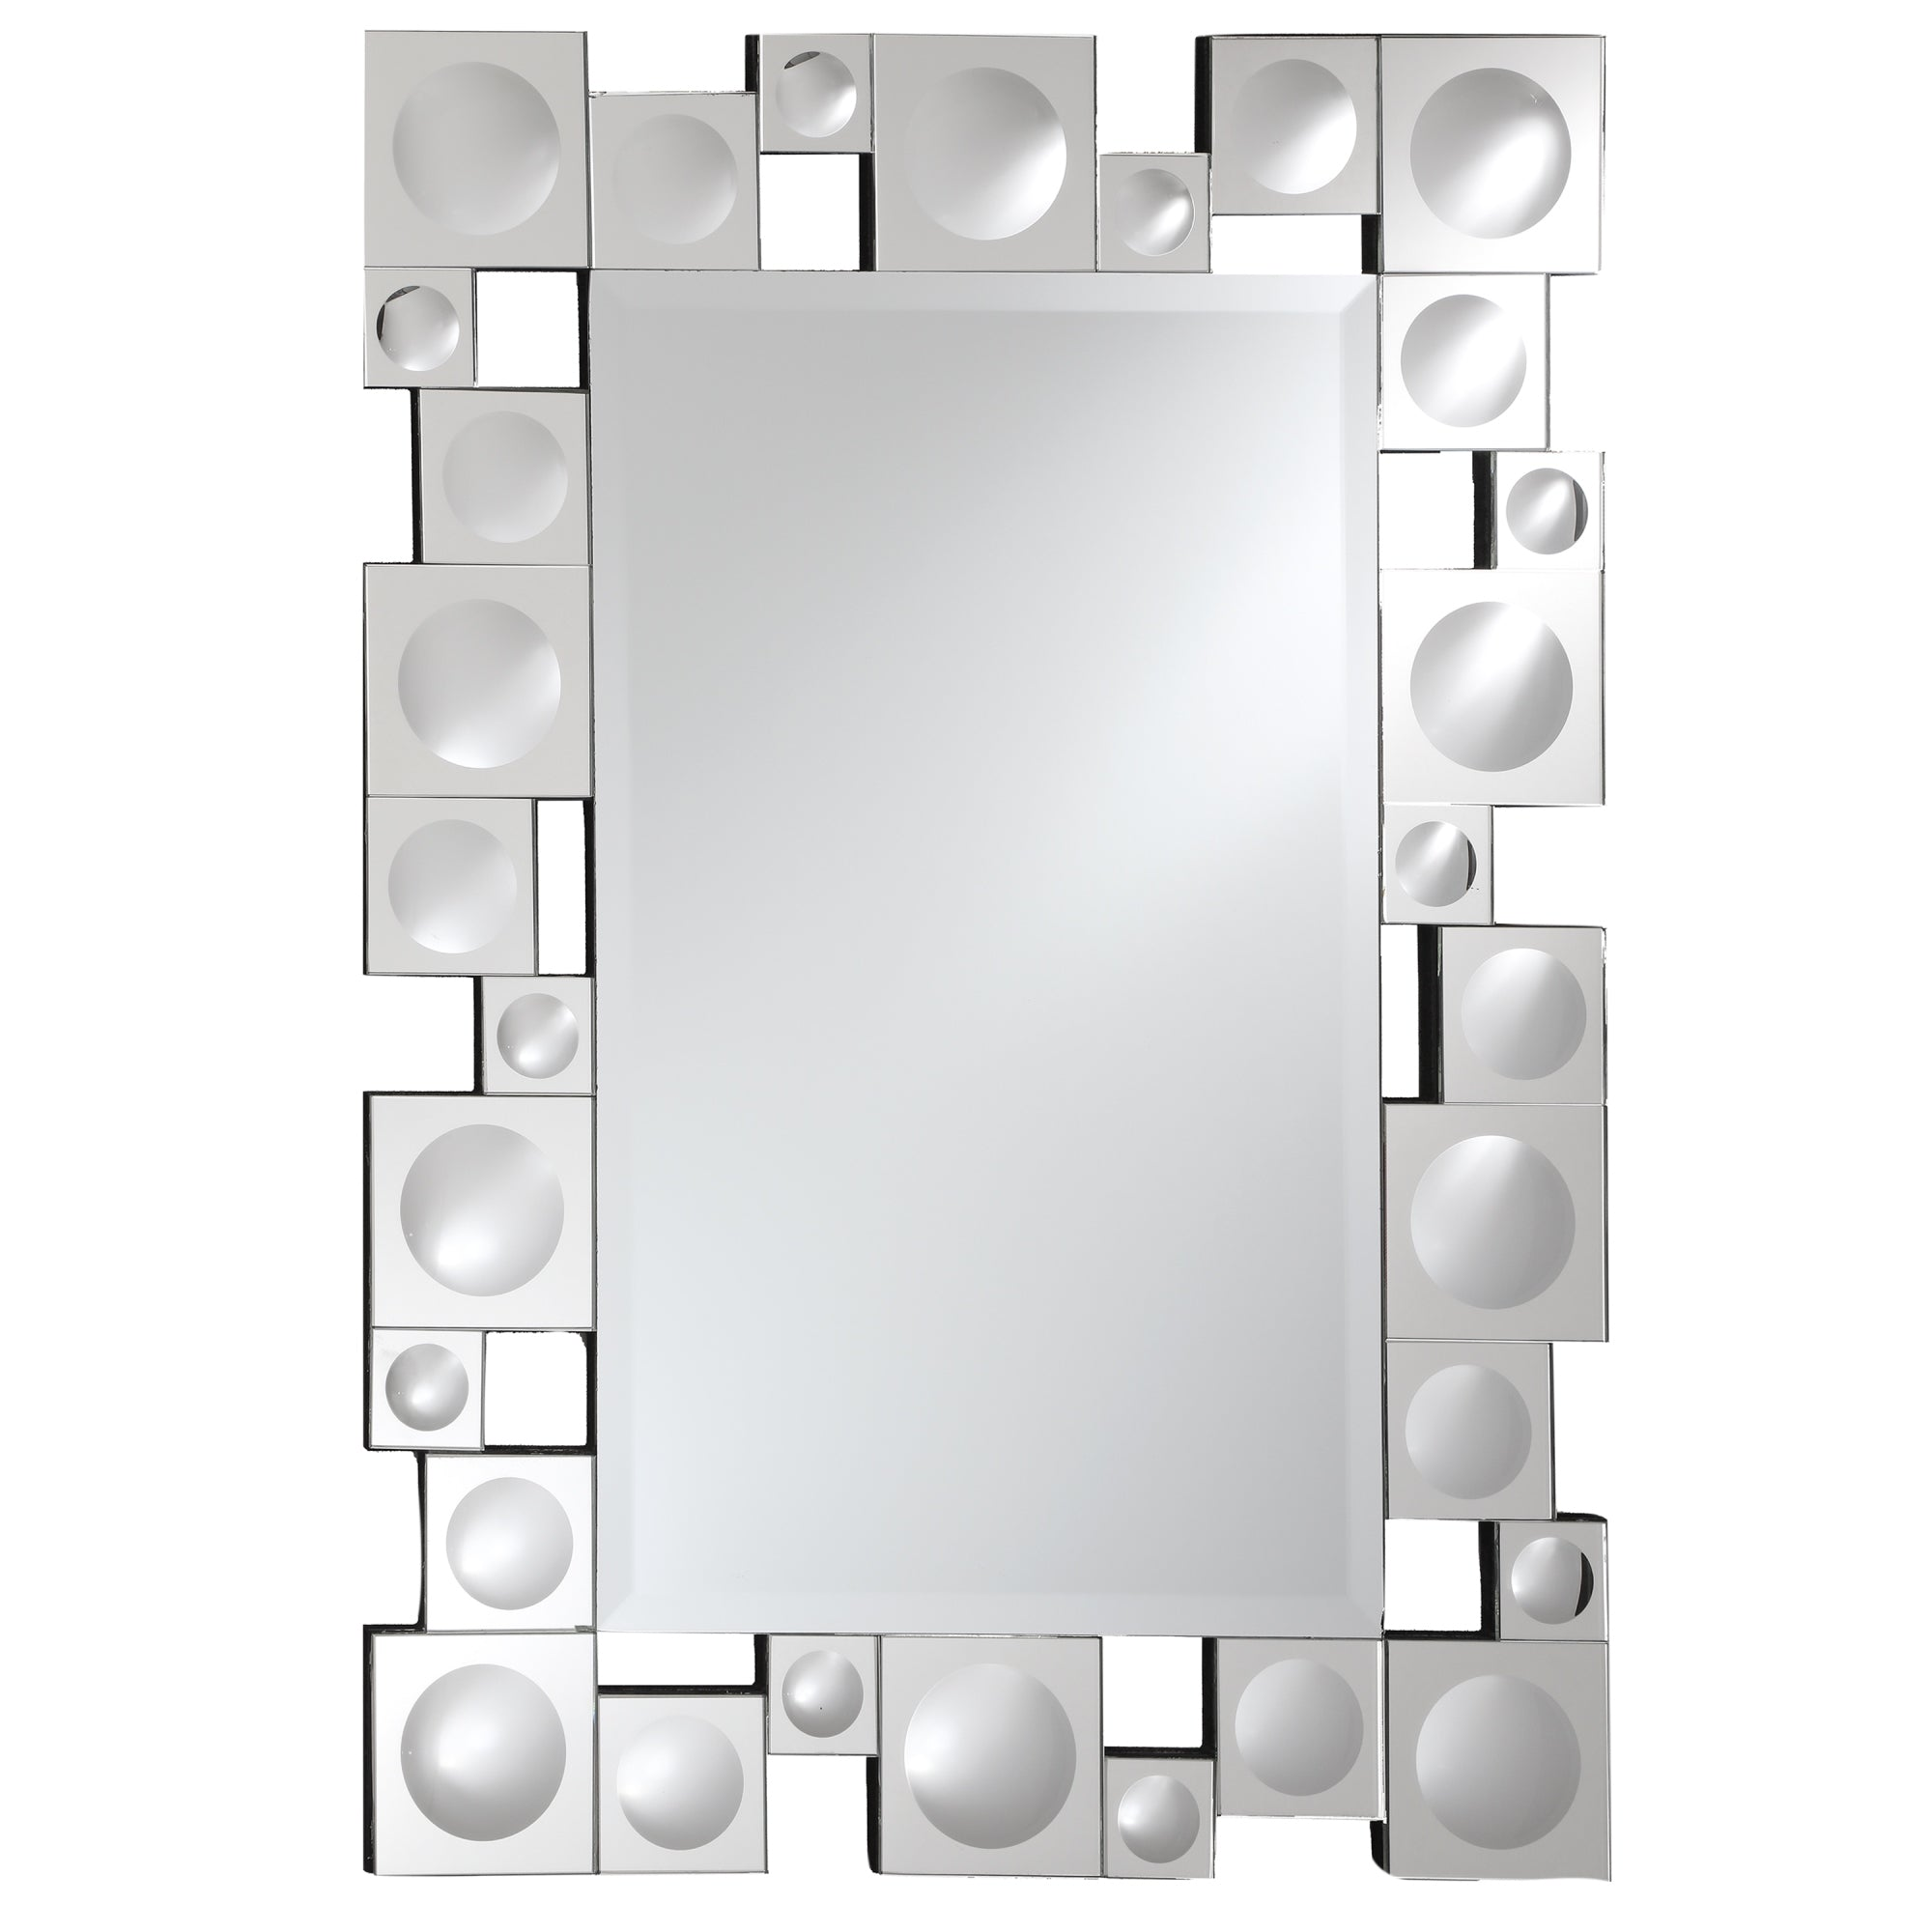 rectangular decorative mirror modern retro modern wall mirror decorative framed with dimensional mirrored squares breeze point m00202 16